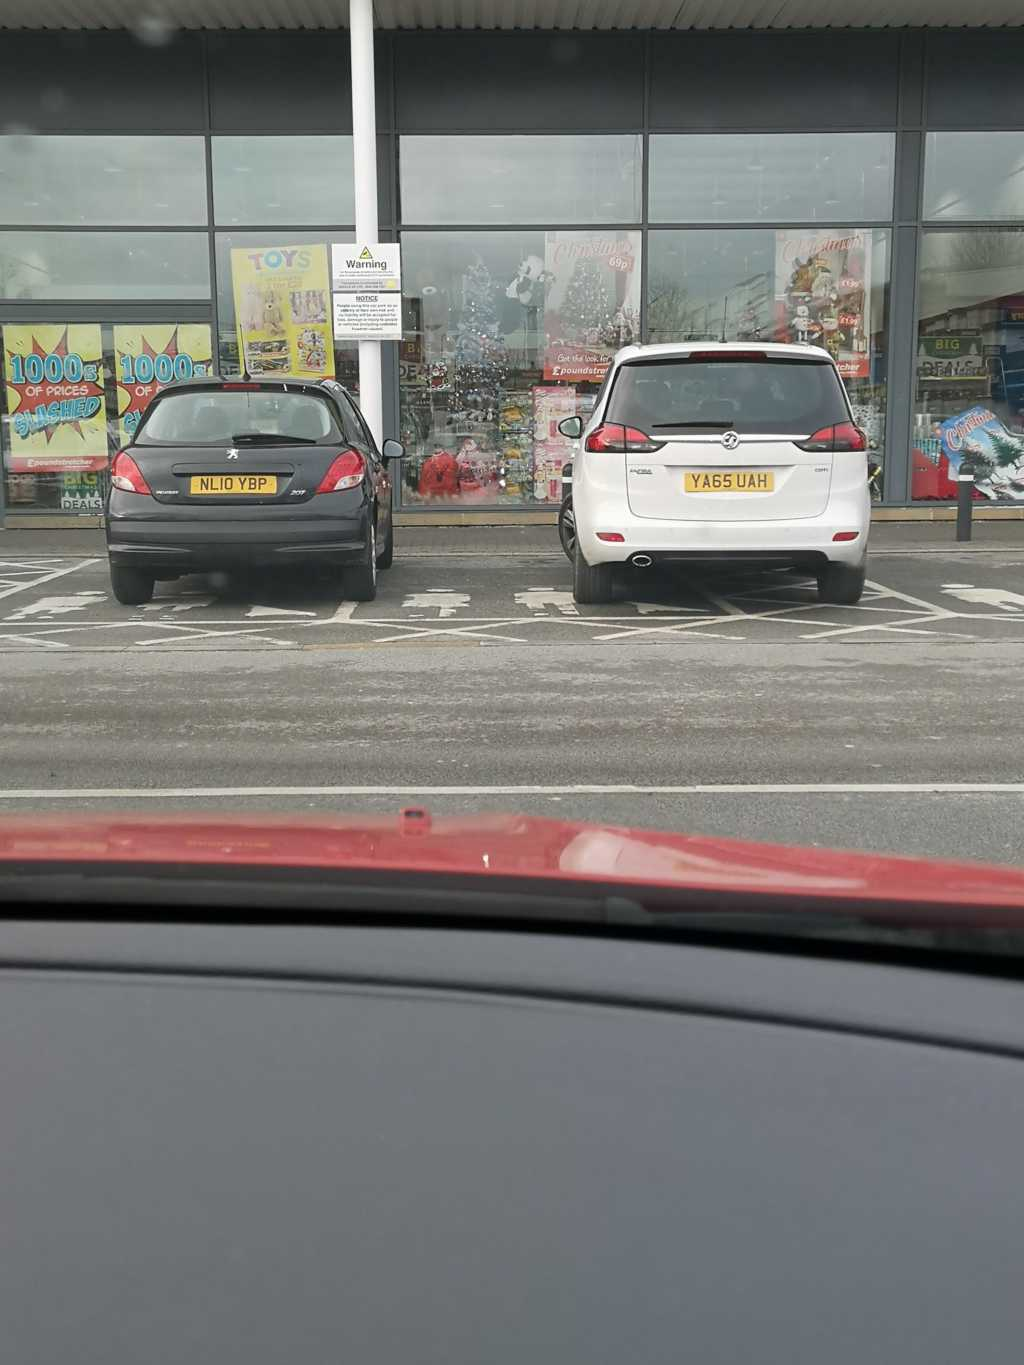 NL10 YBP & YA65 UAH is a crap parker